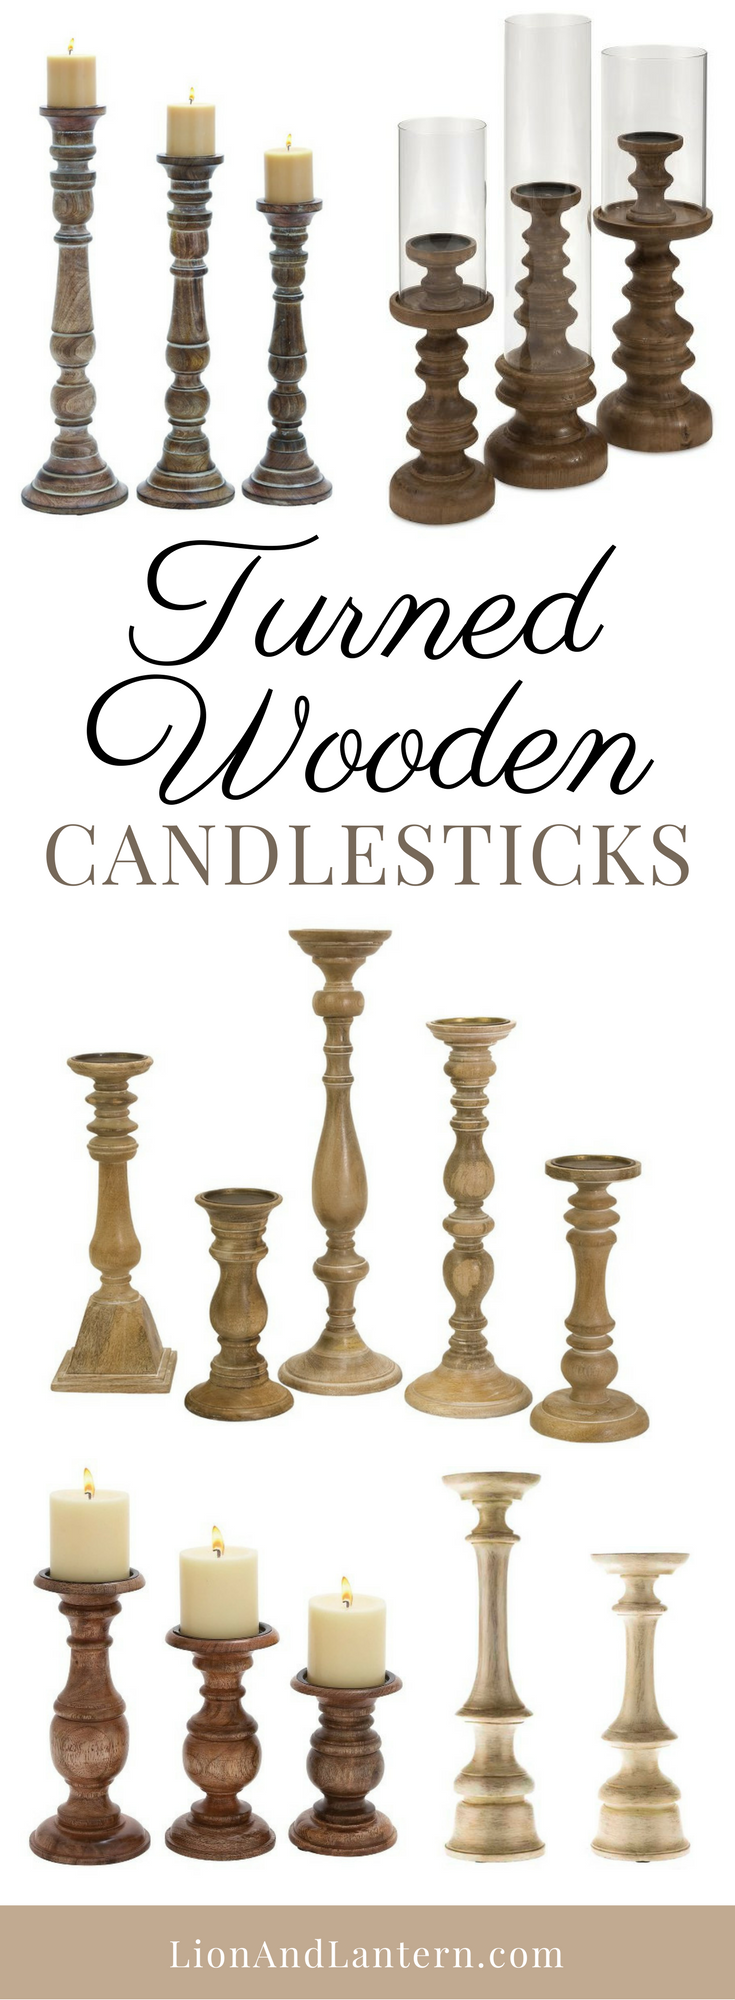 Turned Wooden Candlesticks at LionAndLantern.com. Farmhouse candlestick, candle holder, turned candle holder, rustic candle stick